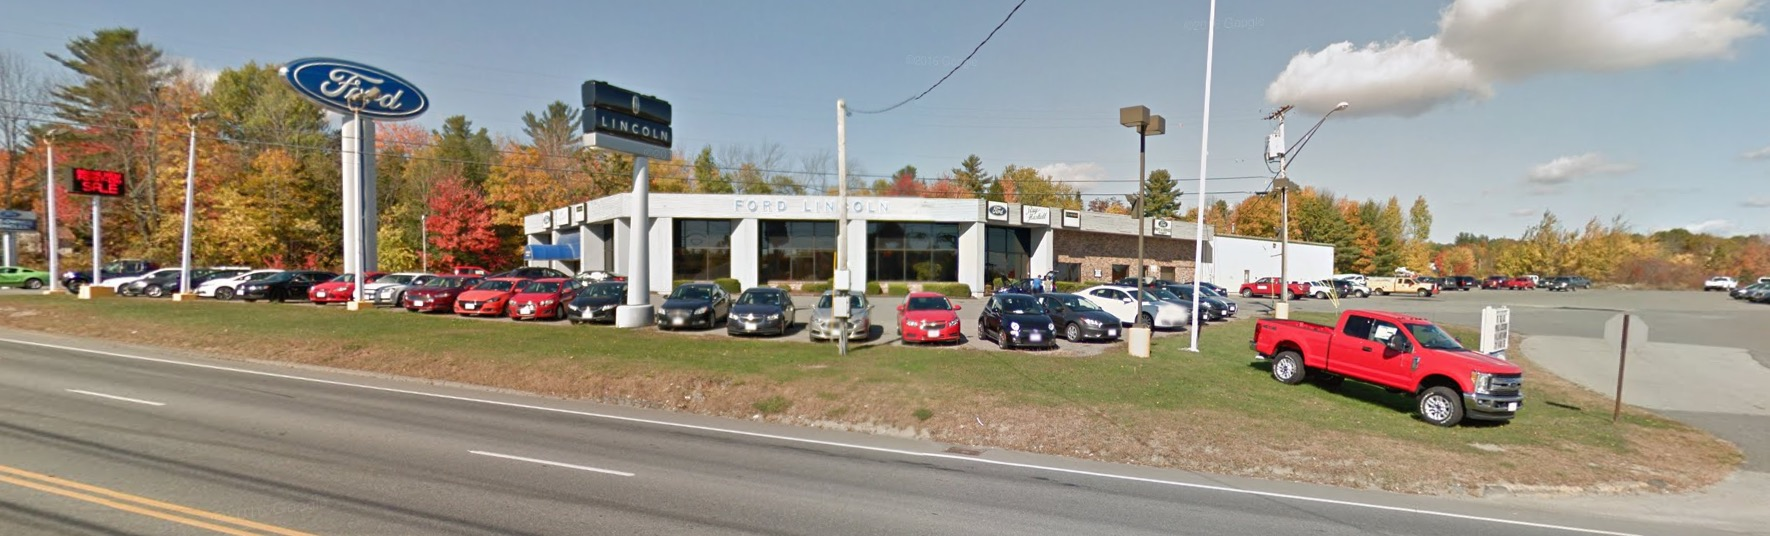 Ray Haskell Ford Lincoin Maine